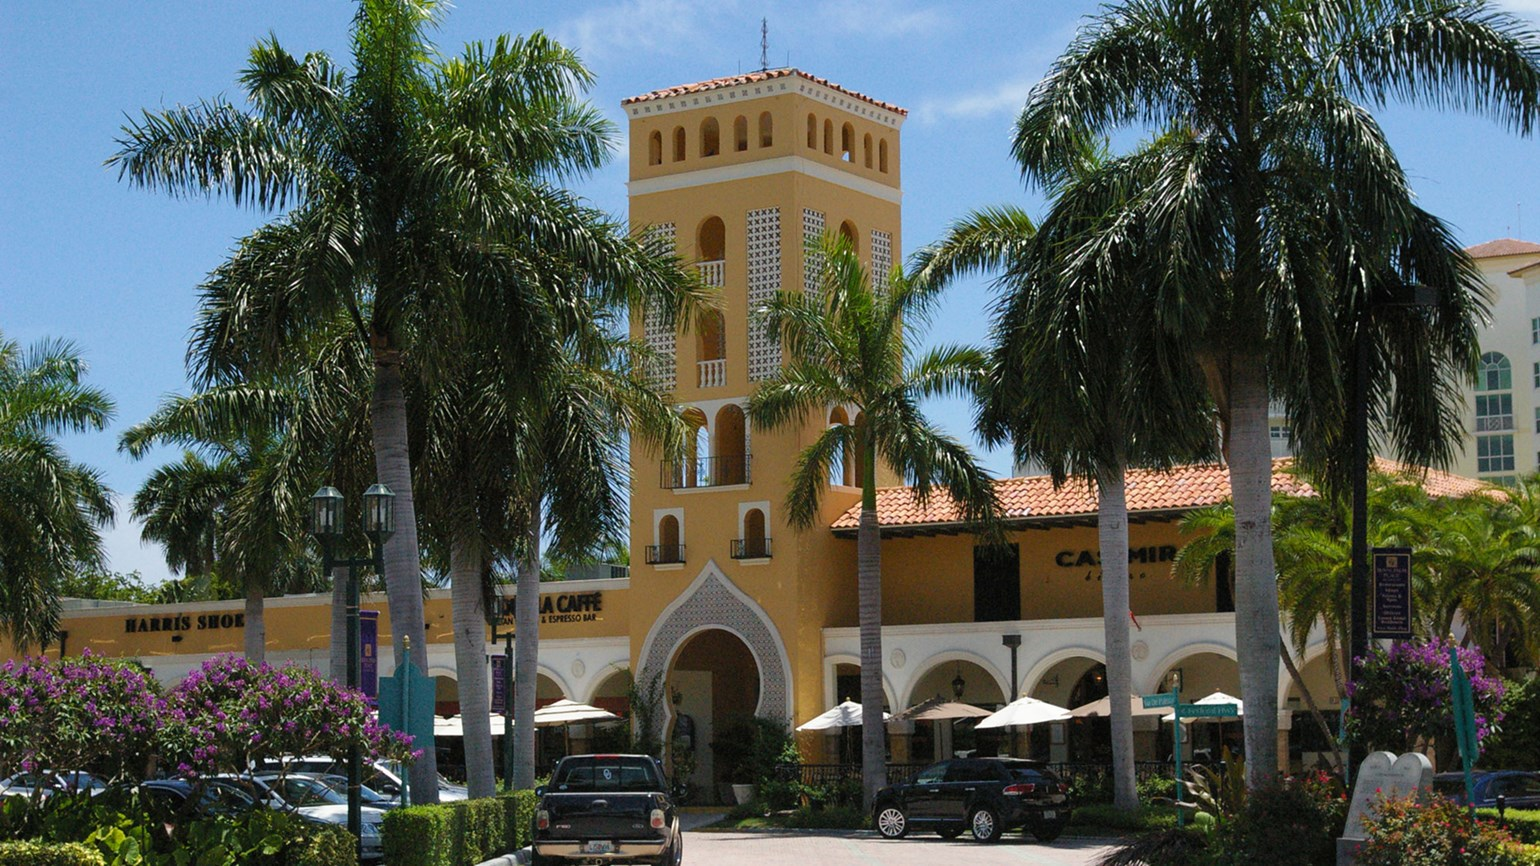 Hotel boom coming to the Palm Beaches